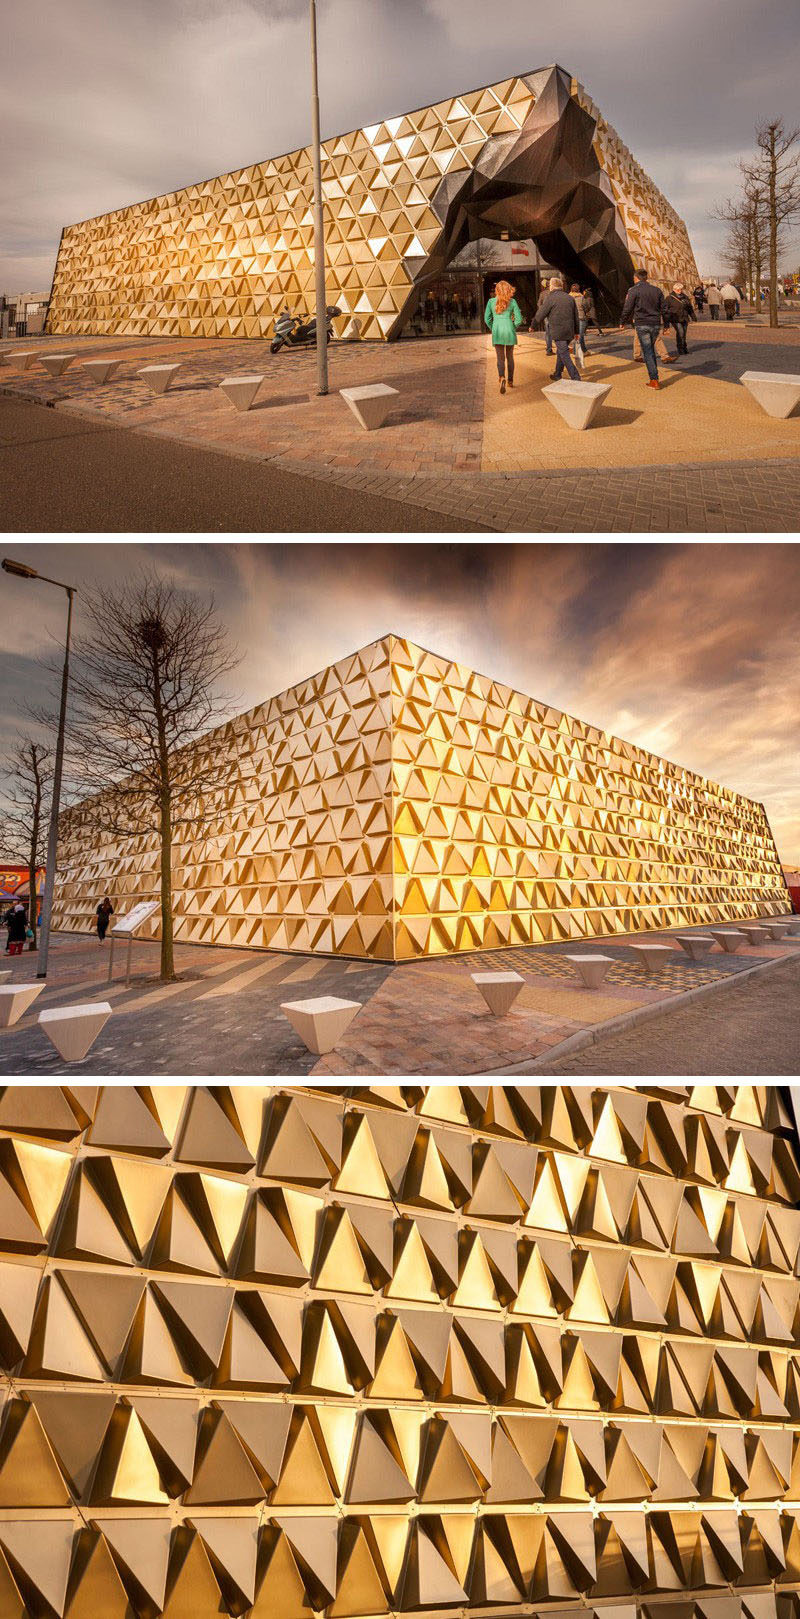 Exterior Design Ideas - 15 Buildings That Have Unique And Creative Facades // Gold triangular panels positioned at various angles give this building, designed for gold dealer and goldsmiths, a shimmering, reflective facade.